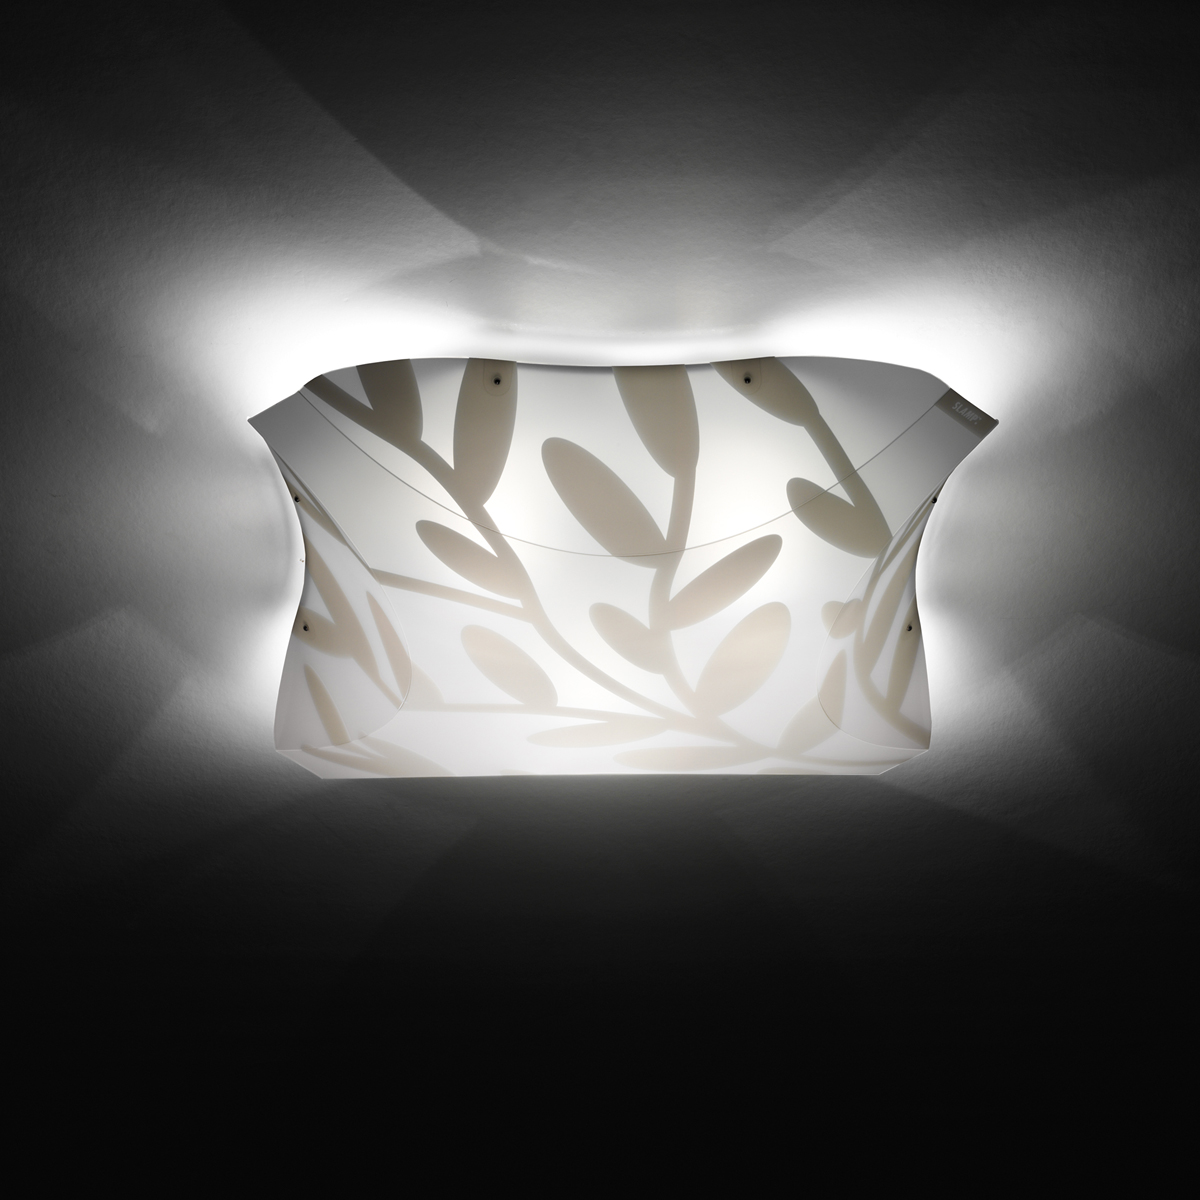 Dafne Plana Small Ceiling Lamp